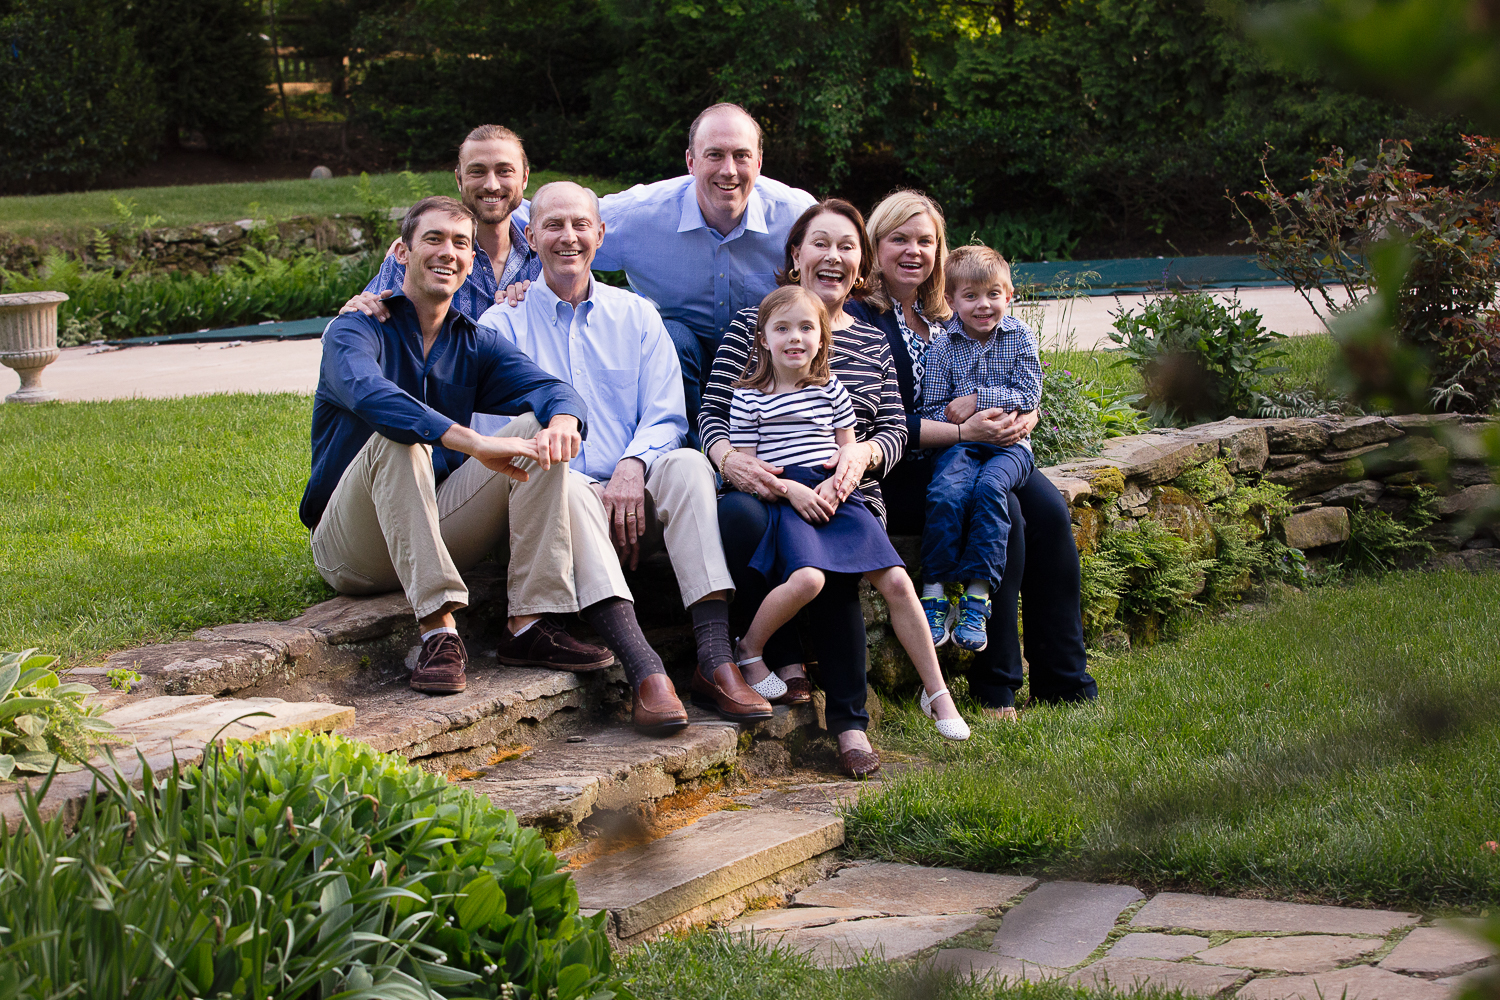 Outdoor portrait of an extended family